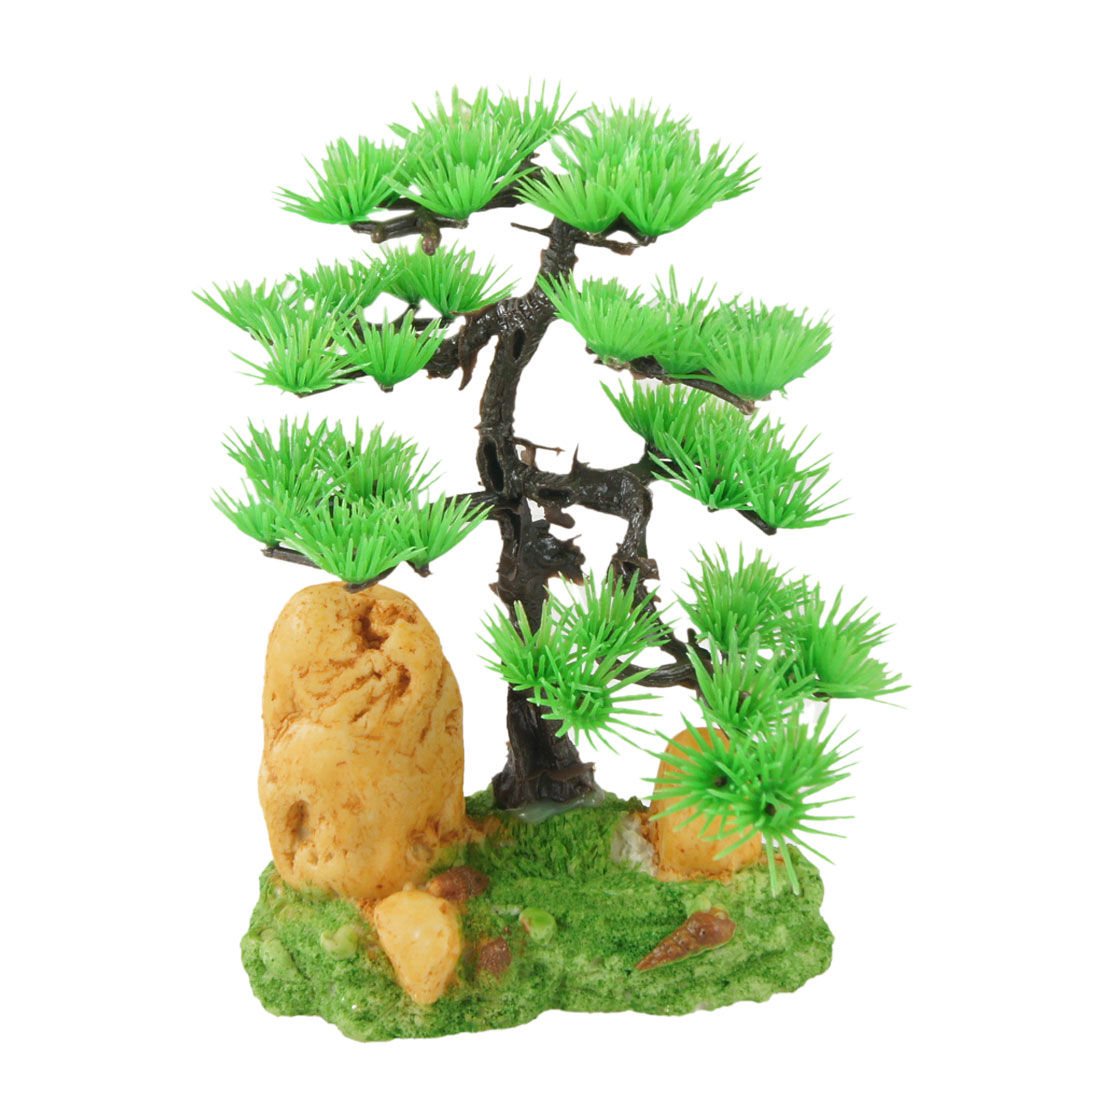 "Aquarium Landscaping 6.7"" Height Green Manmade Pine Tree Decor Water Plant"